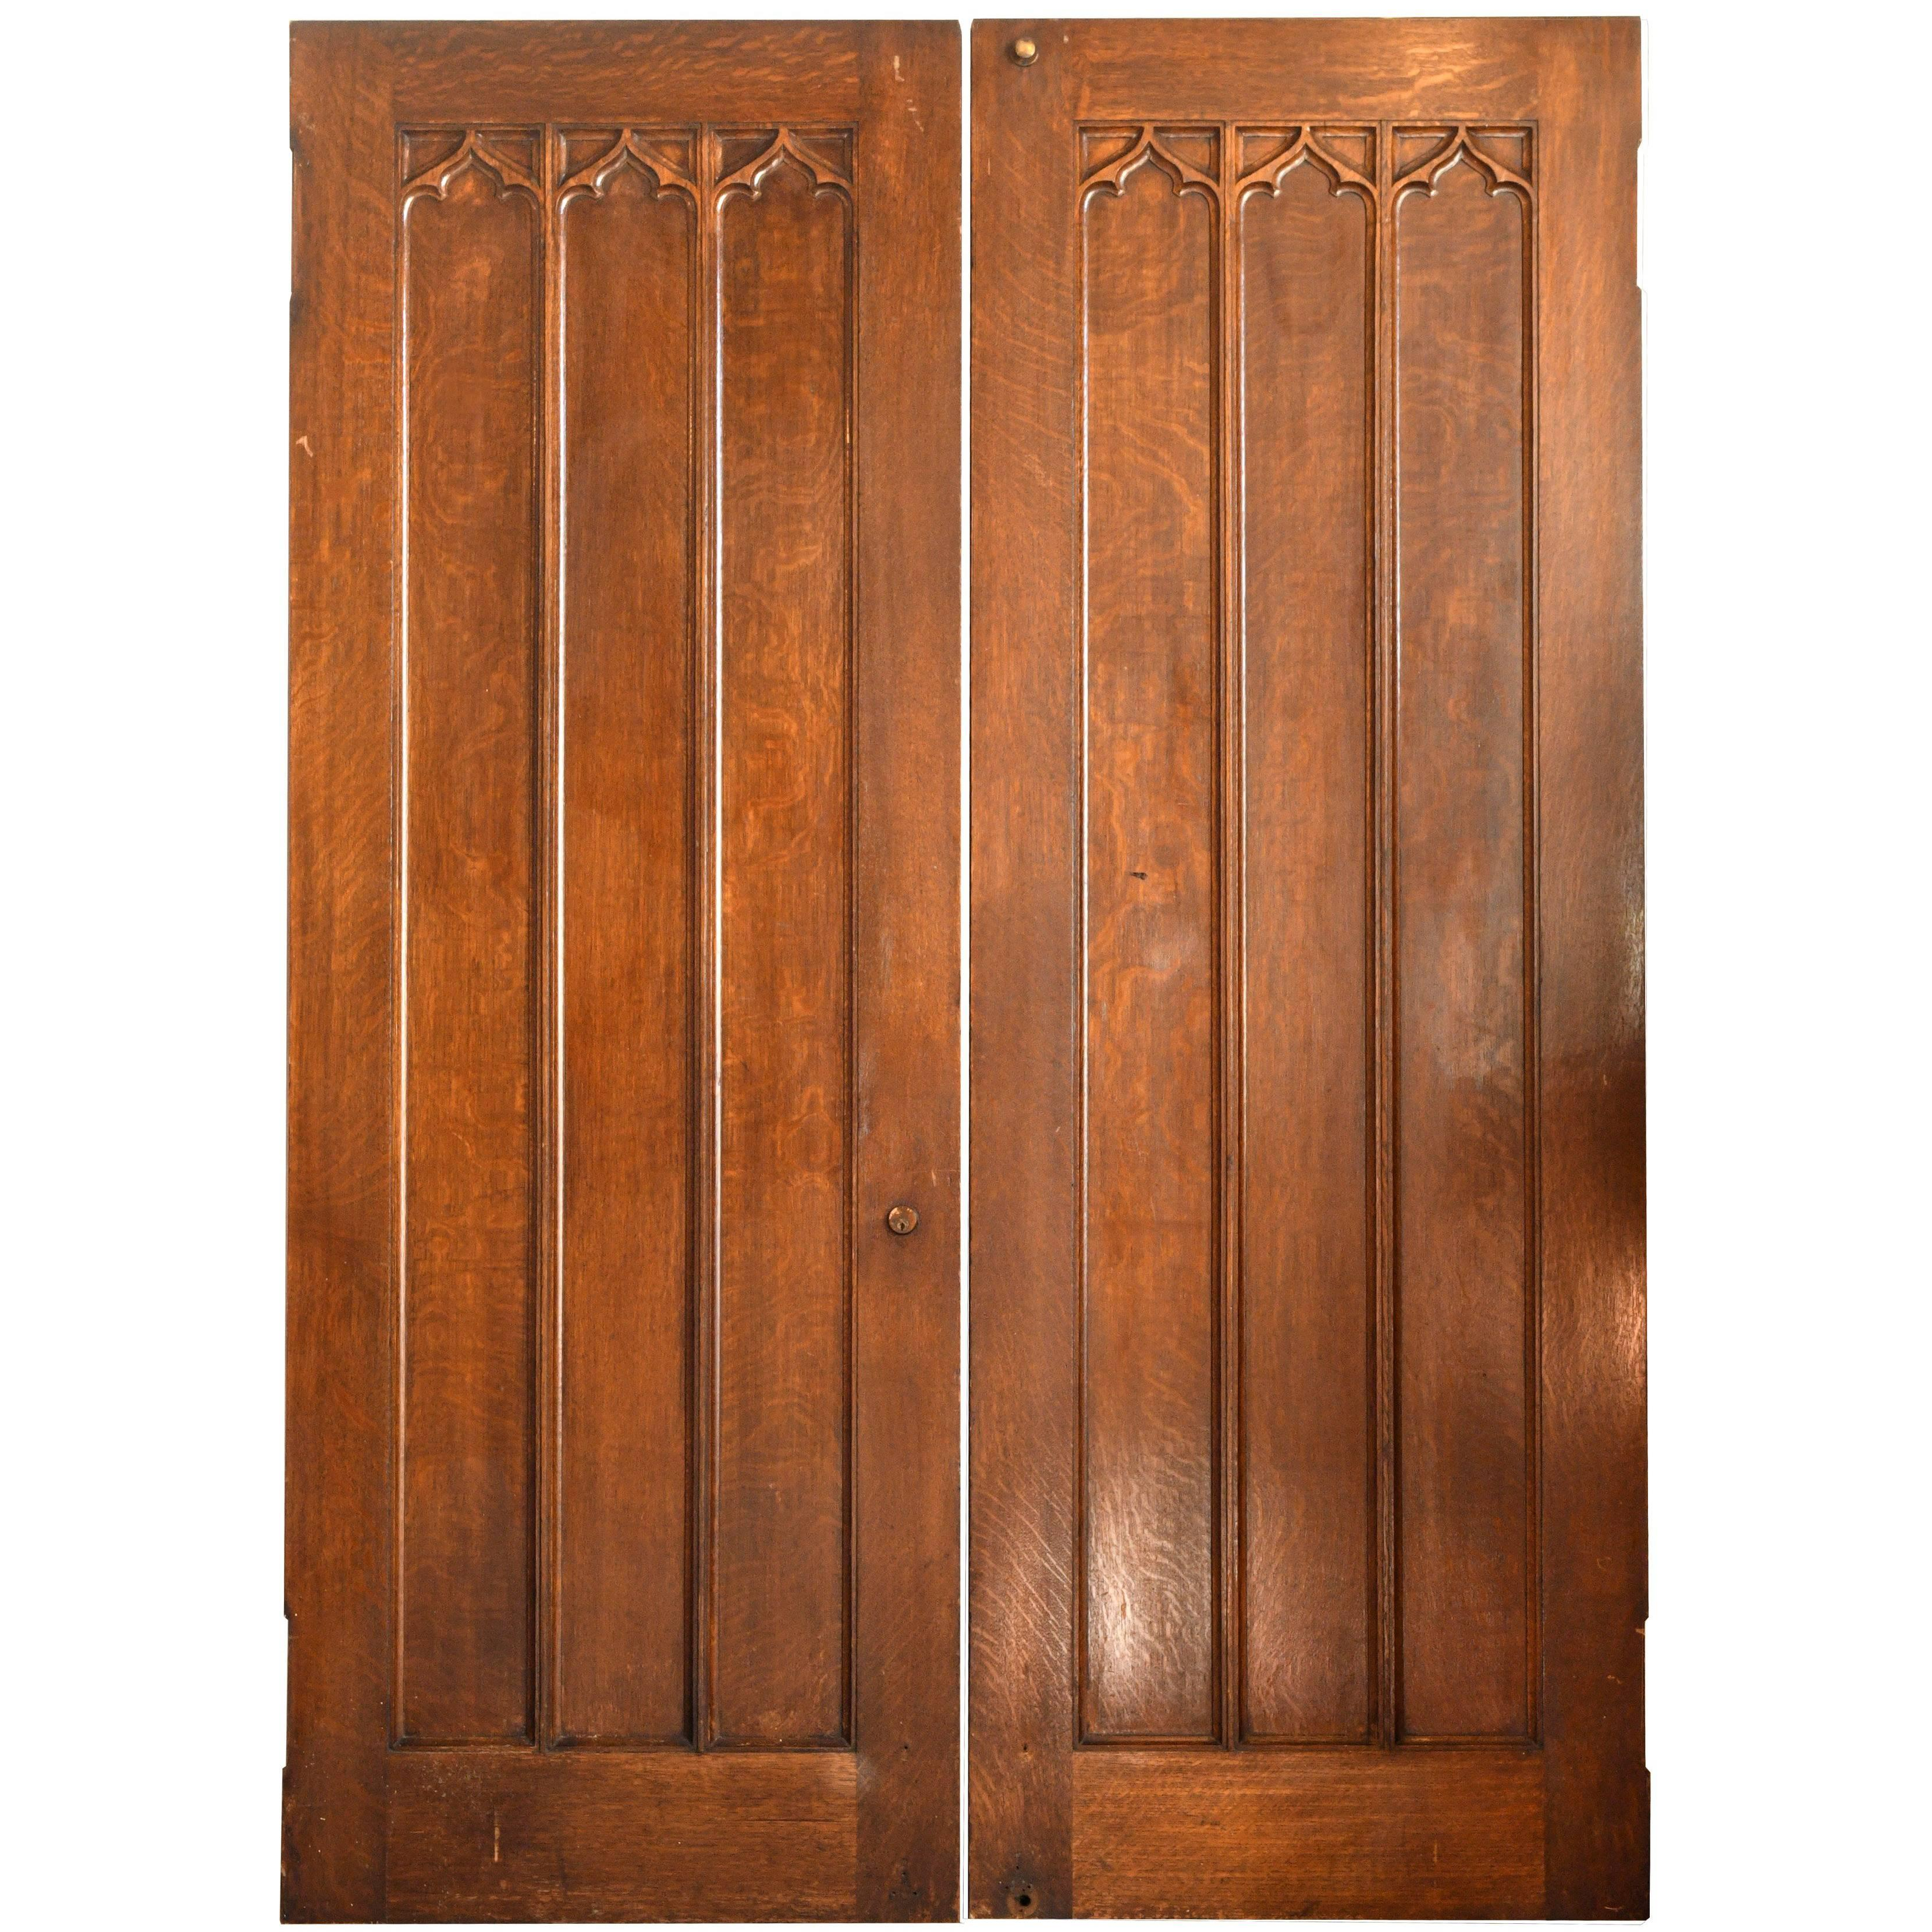 Tall Oak Gothic Double Swinging Doors  sc 1 st  1stDibs & Medieval Doors and Gates - 23 For Sale at 1stdibs